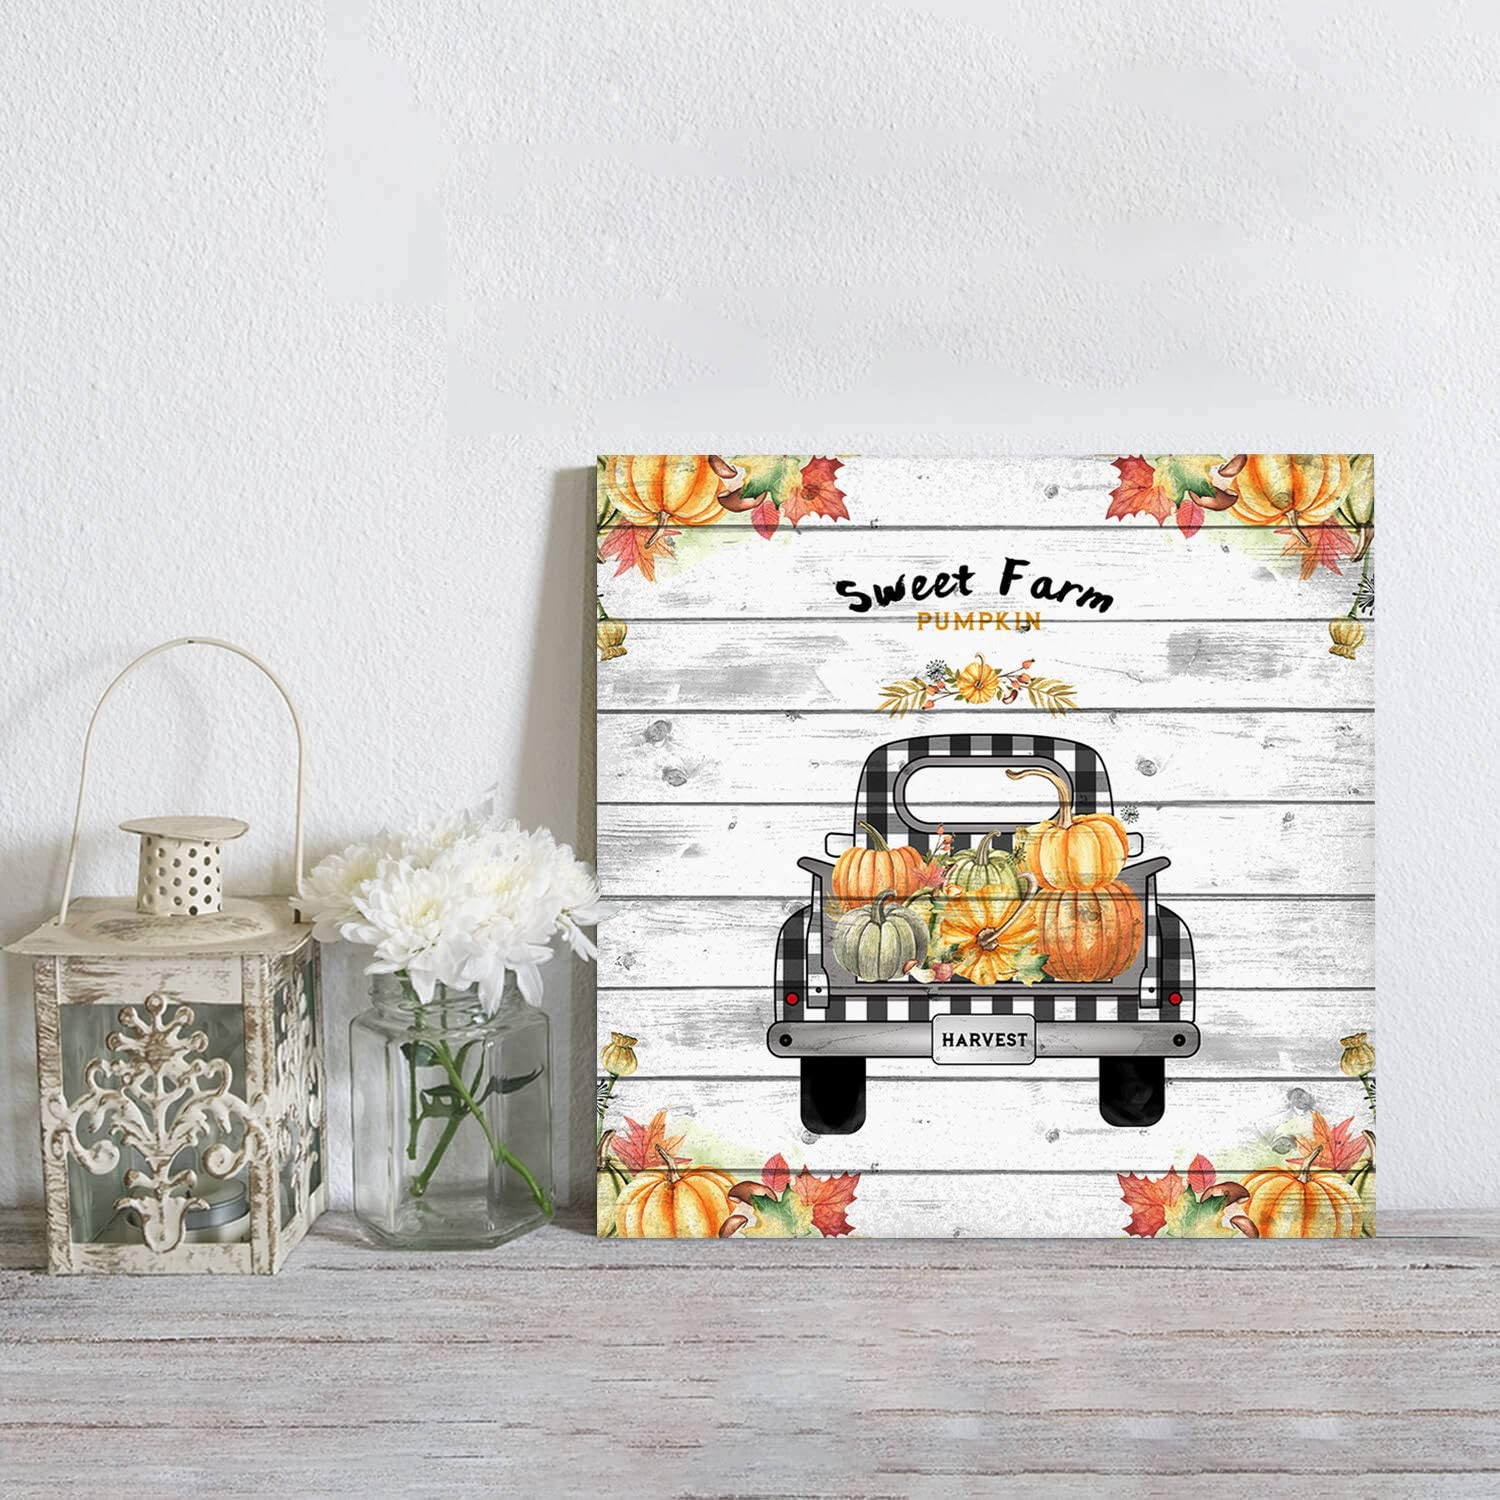 Thanksgiving Canvas Art Wall Canvas Prints Wall Art for Bedroom Canvas Pictures for Wall Art for Office or Living Room Home Decor with Frame Sweet Farm Pumpkin Autumn Harvest Truck Plank 24x24inch